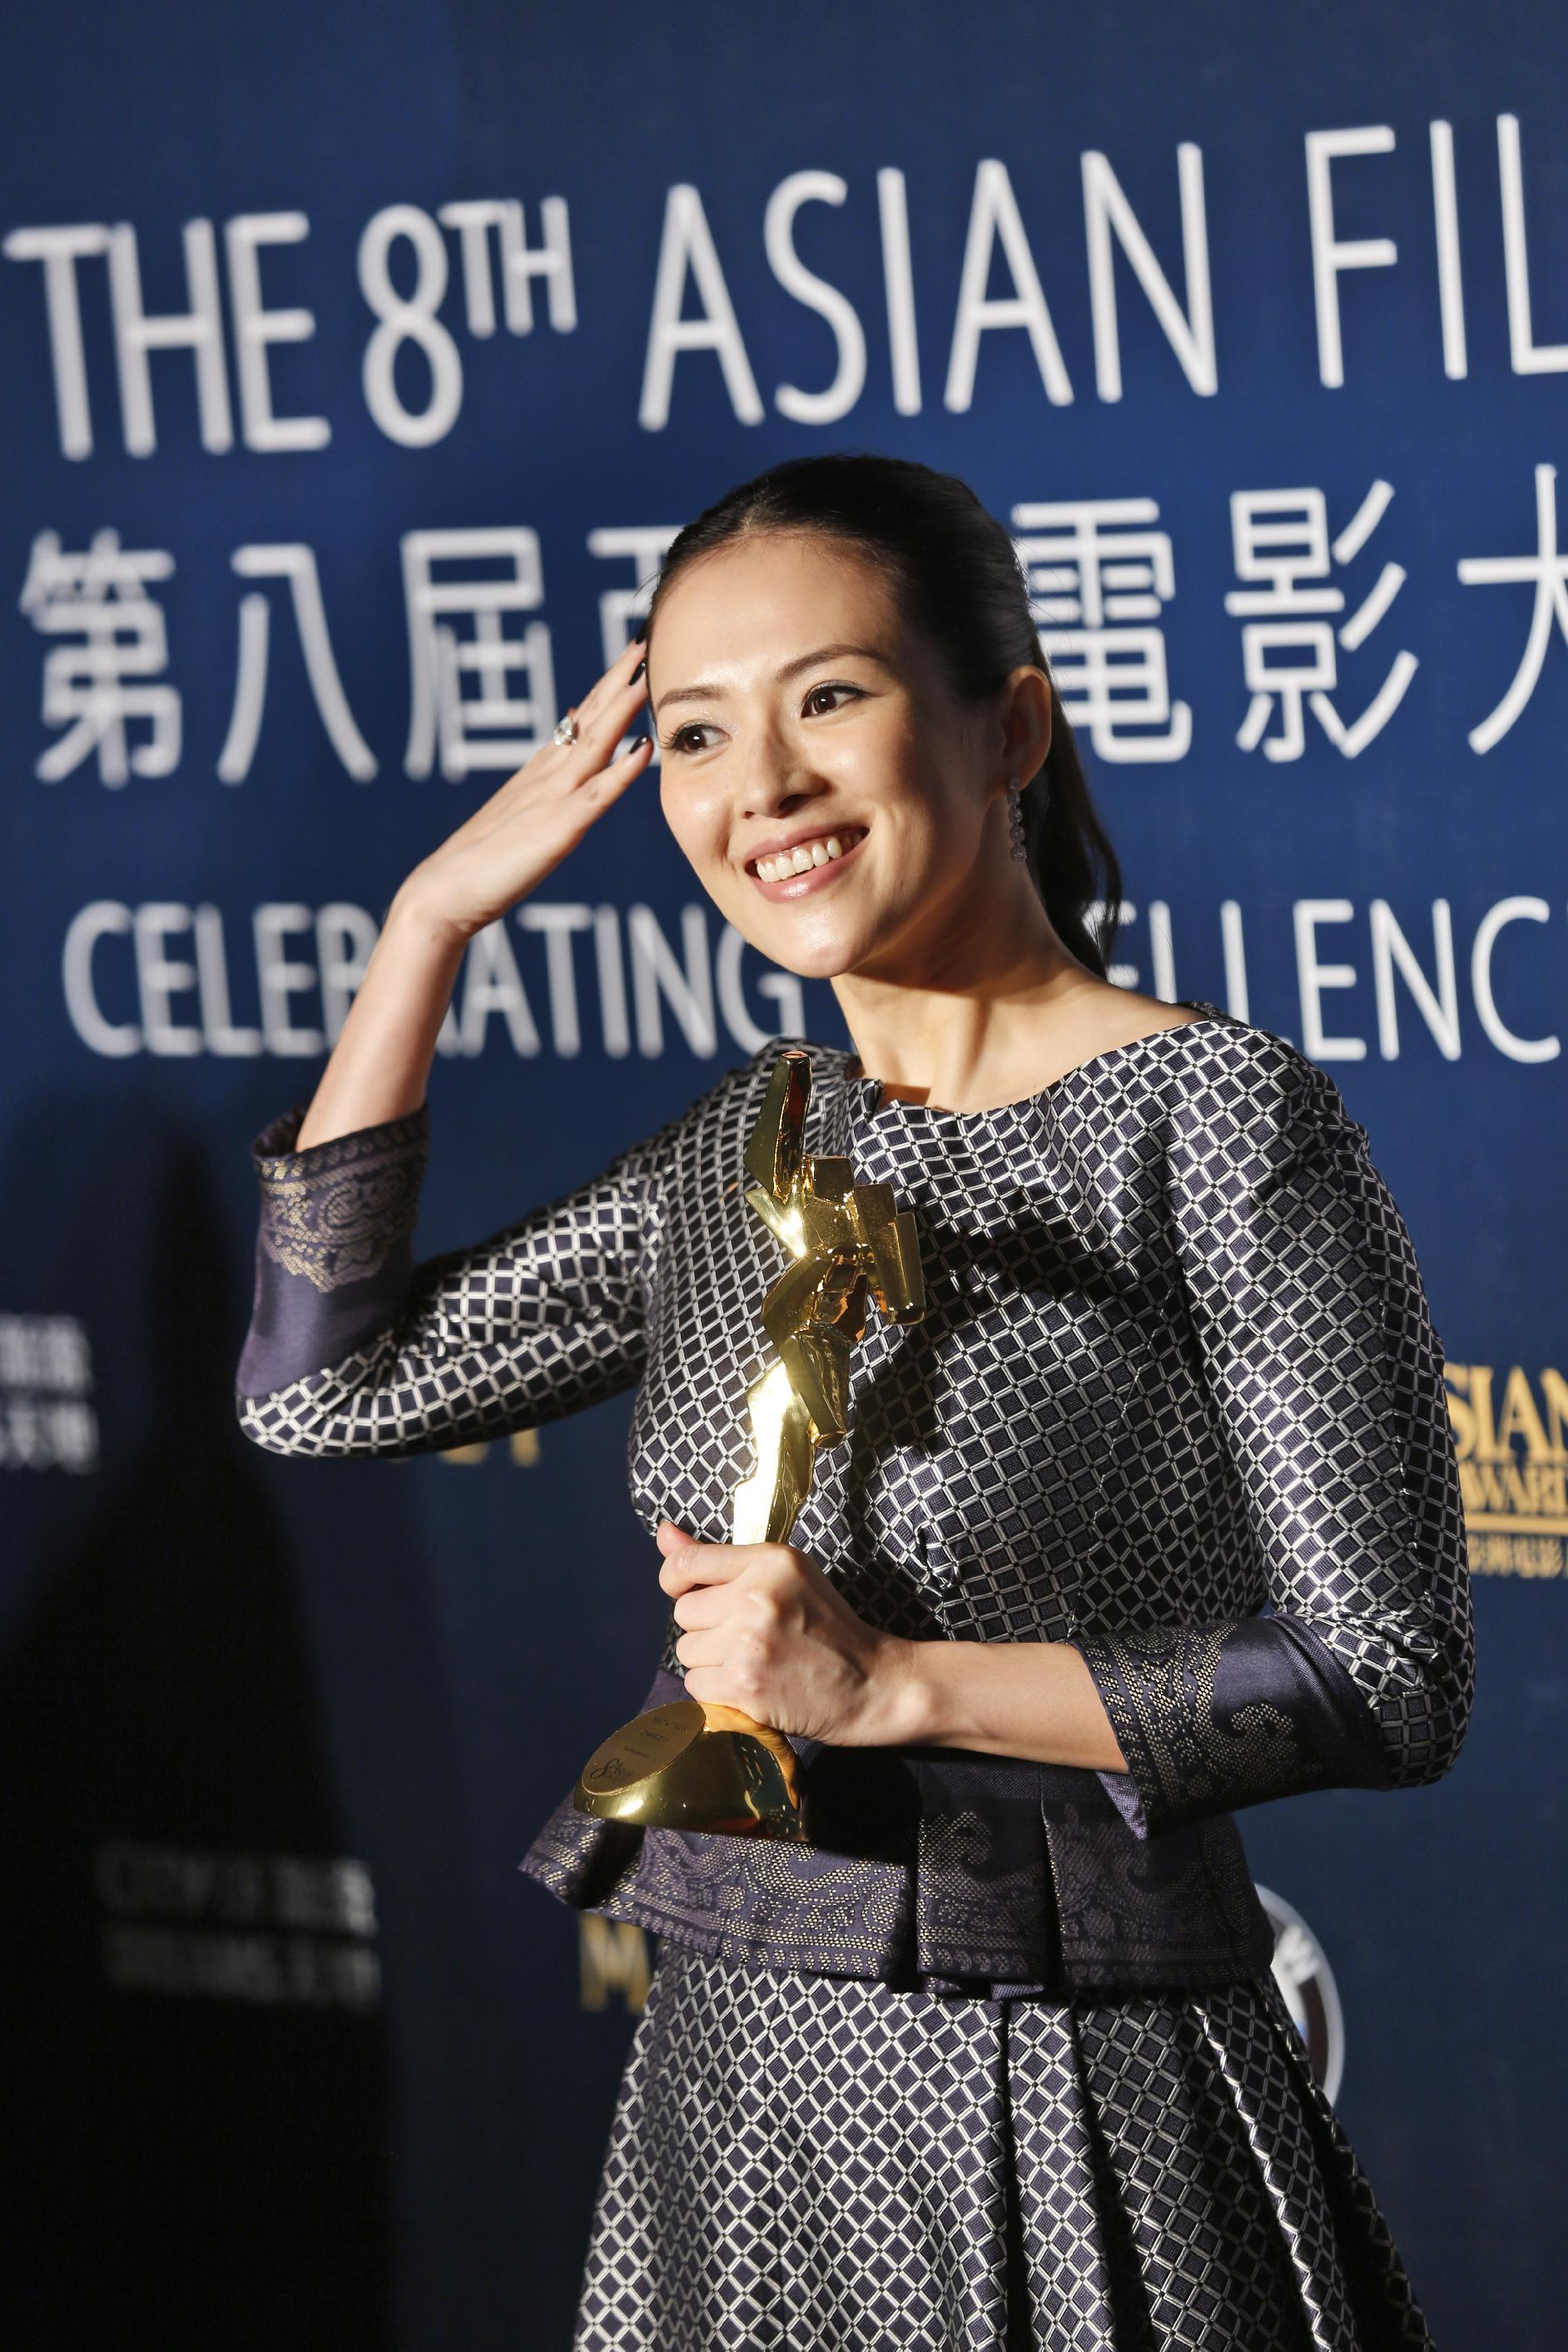 """Chinese actress Zhang Ziyi poses after winning the Best Actress for her movie """"The Grandmaster,"""" of the Asian Film Awards in Macau Thursday, March 27, 2014. (AP Photo/Kin Cheung)"""